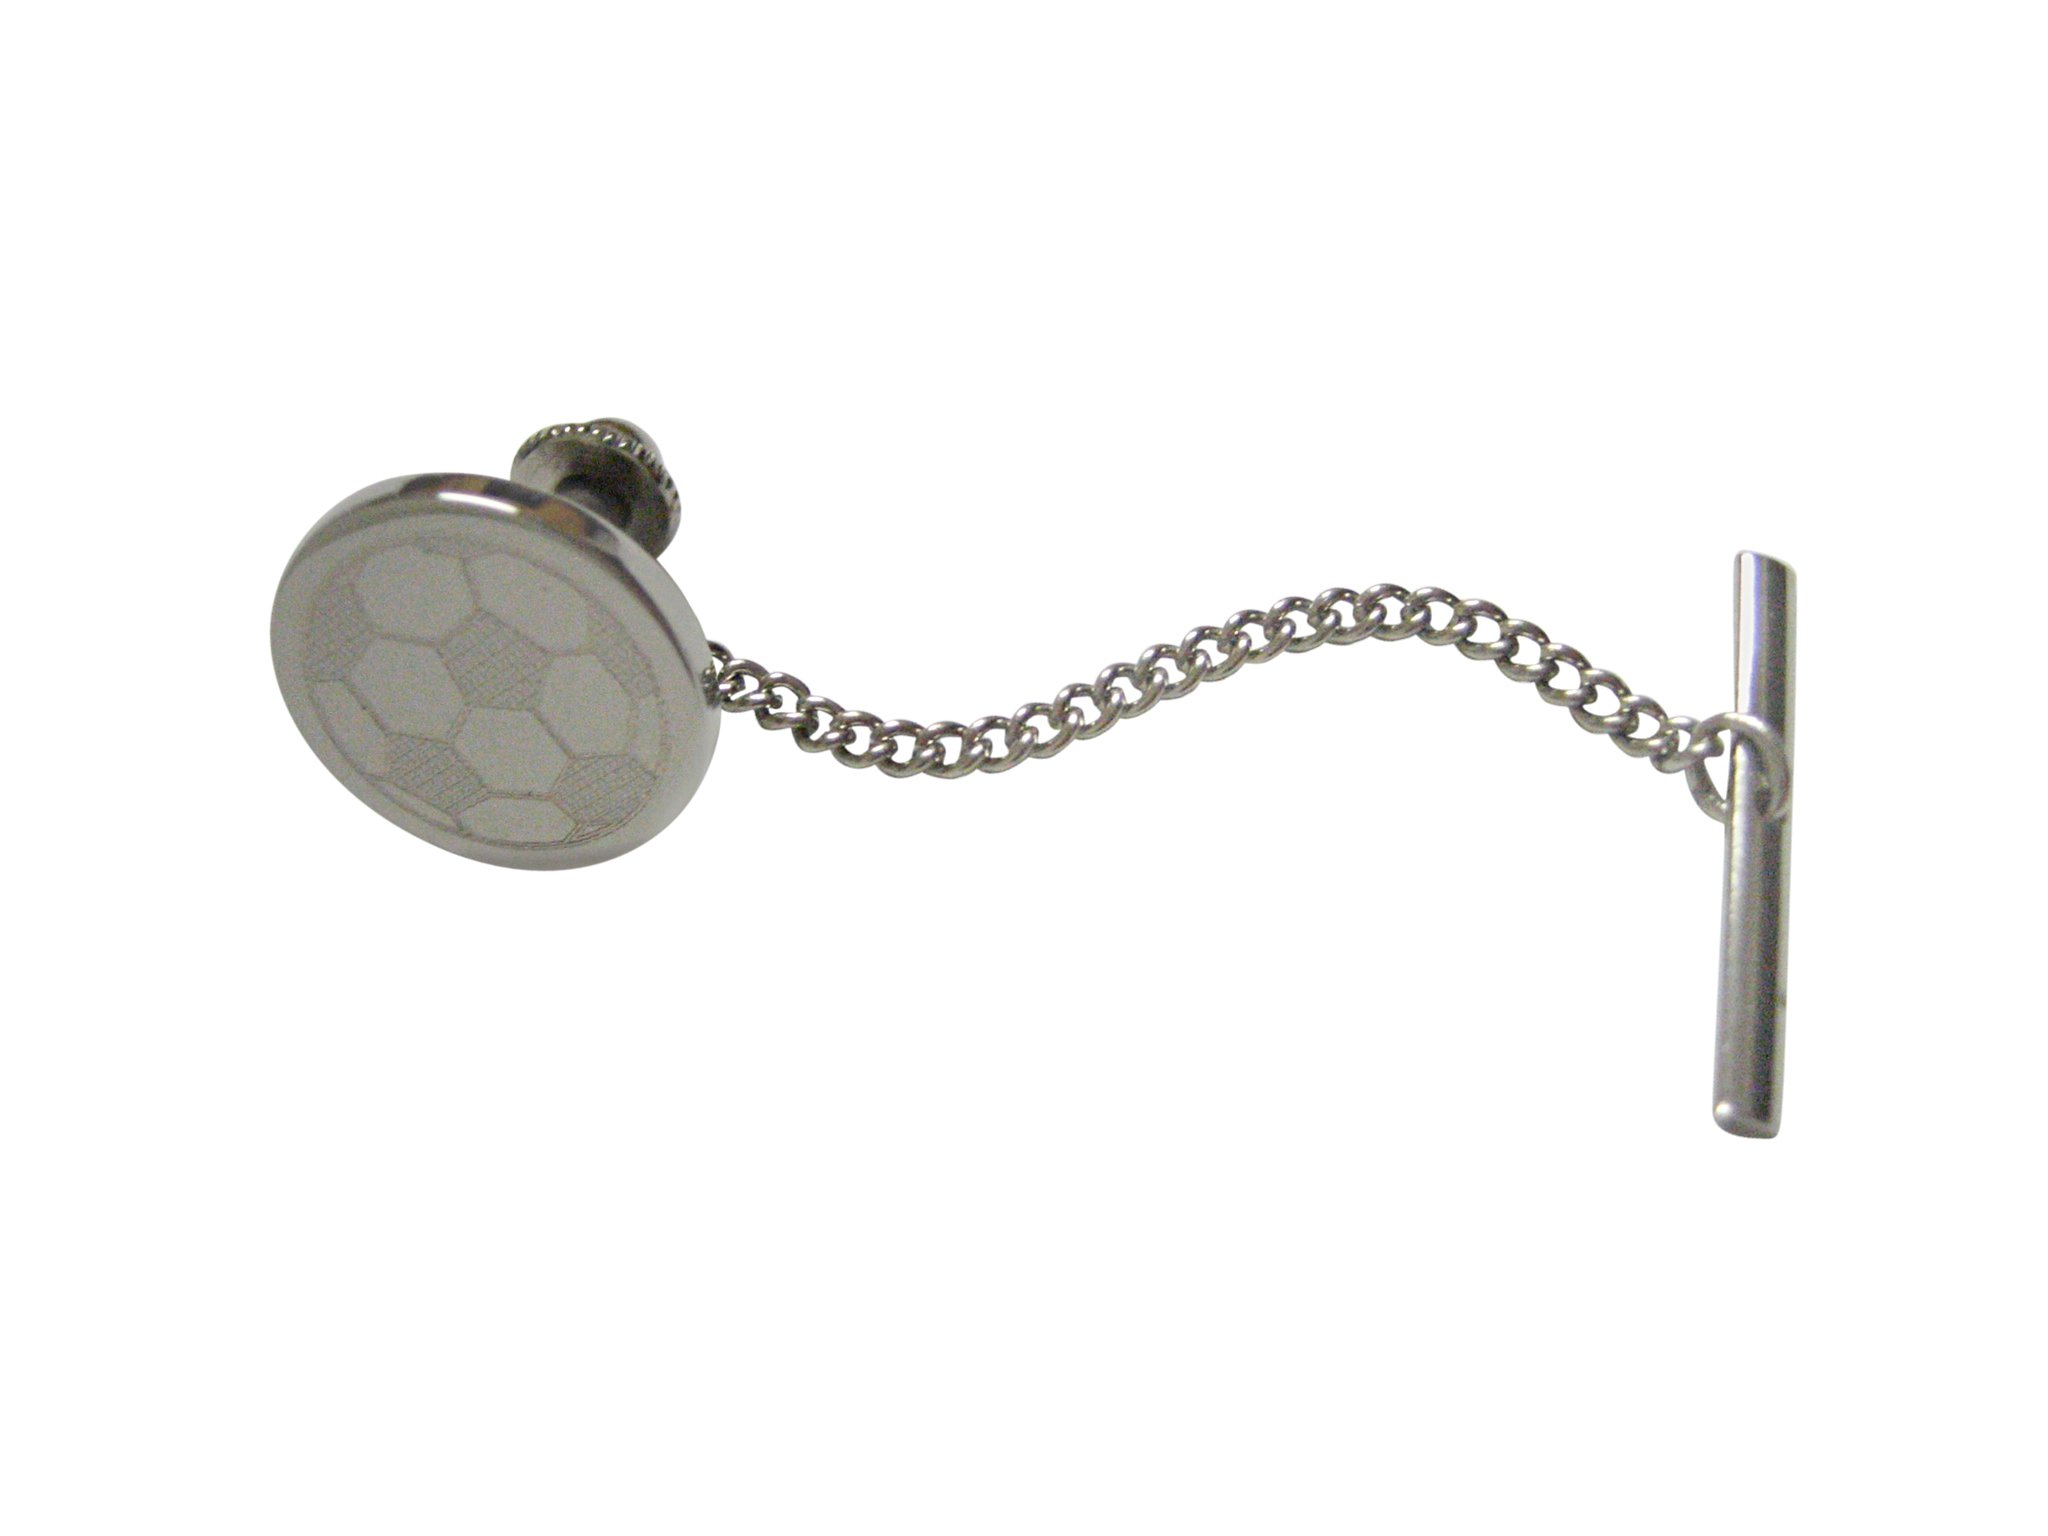 Silver Toned Etched Round Soccer Ball Tie Tack